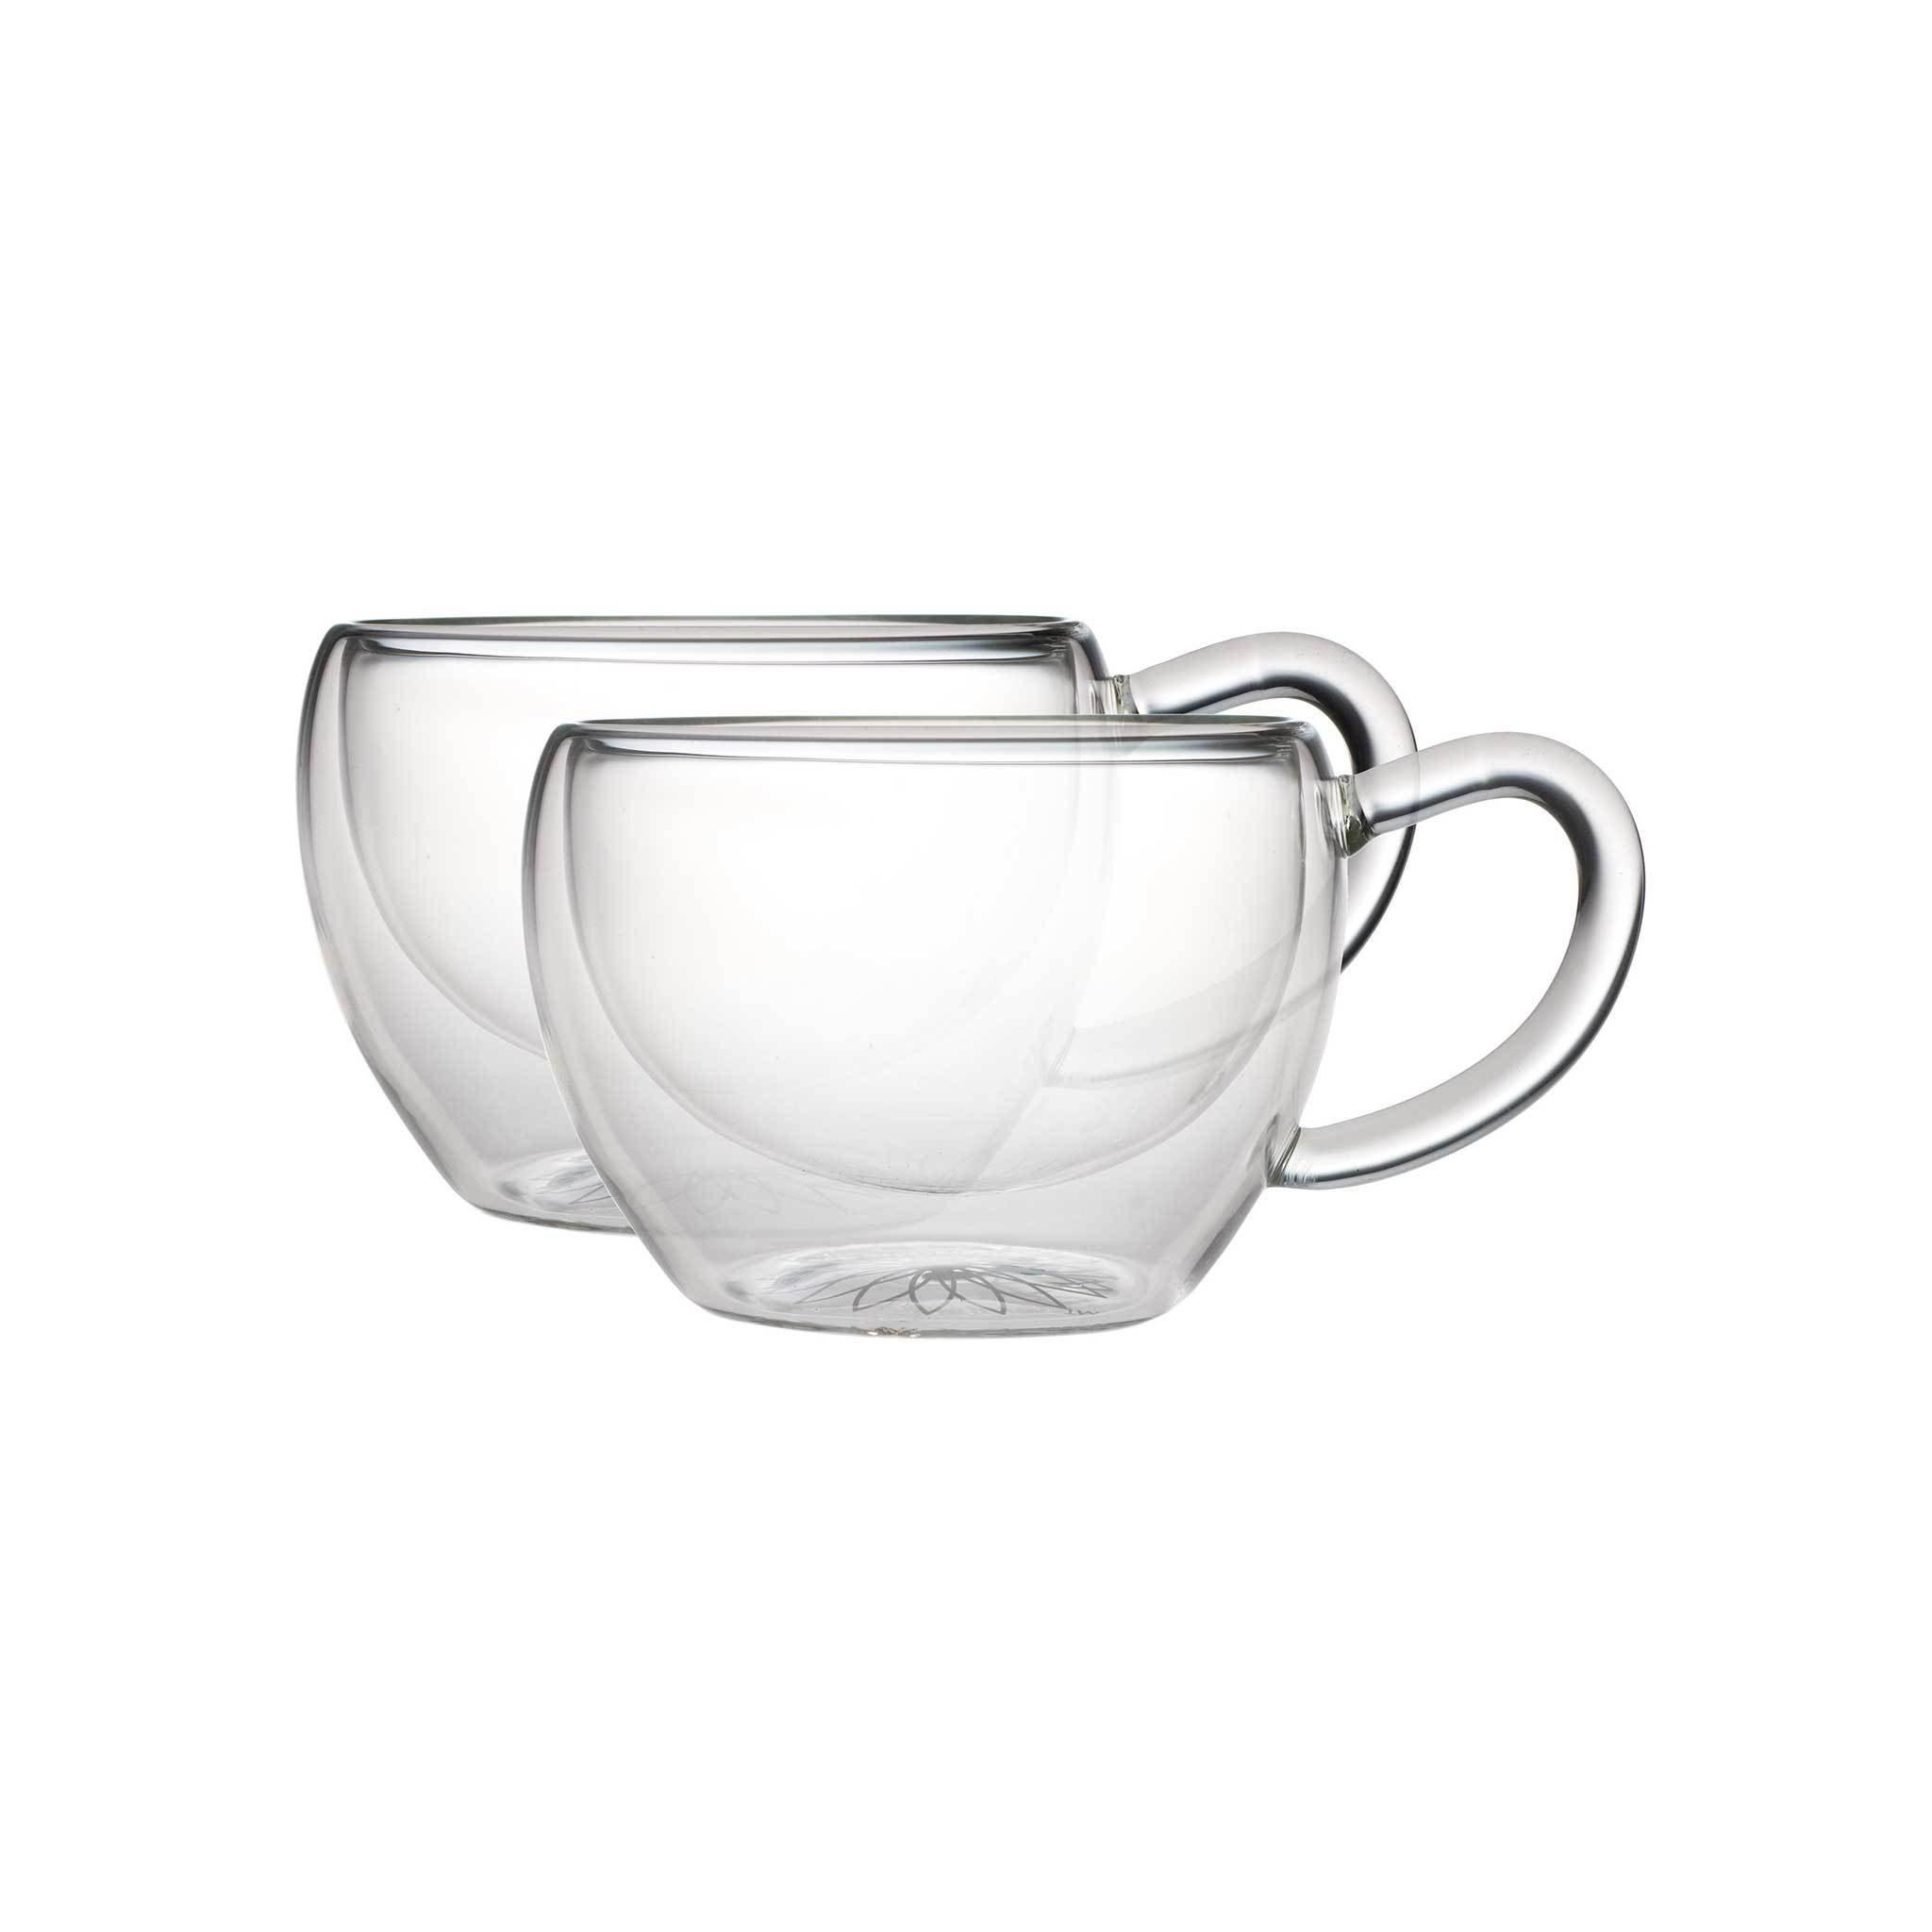 2048x2048 Socrates Double Walled Glass Tea Cups (Set Of 2) 6oz